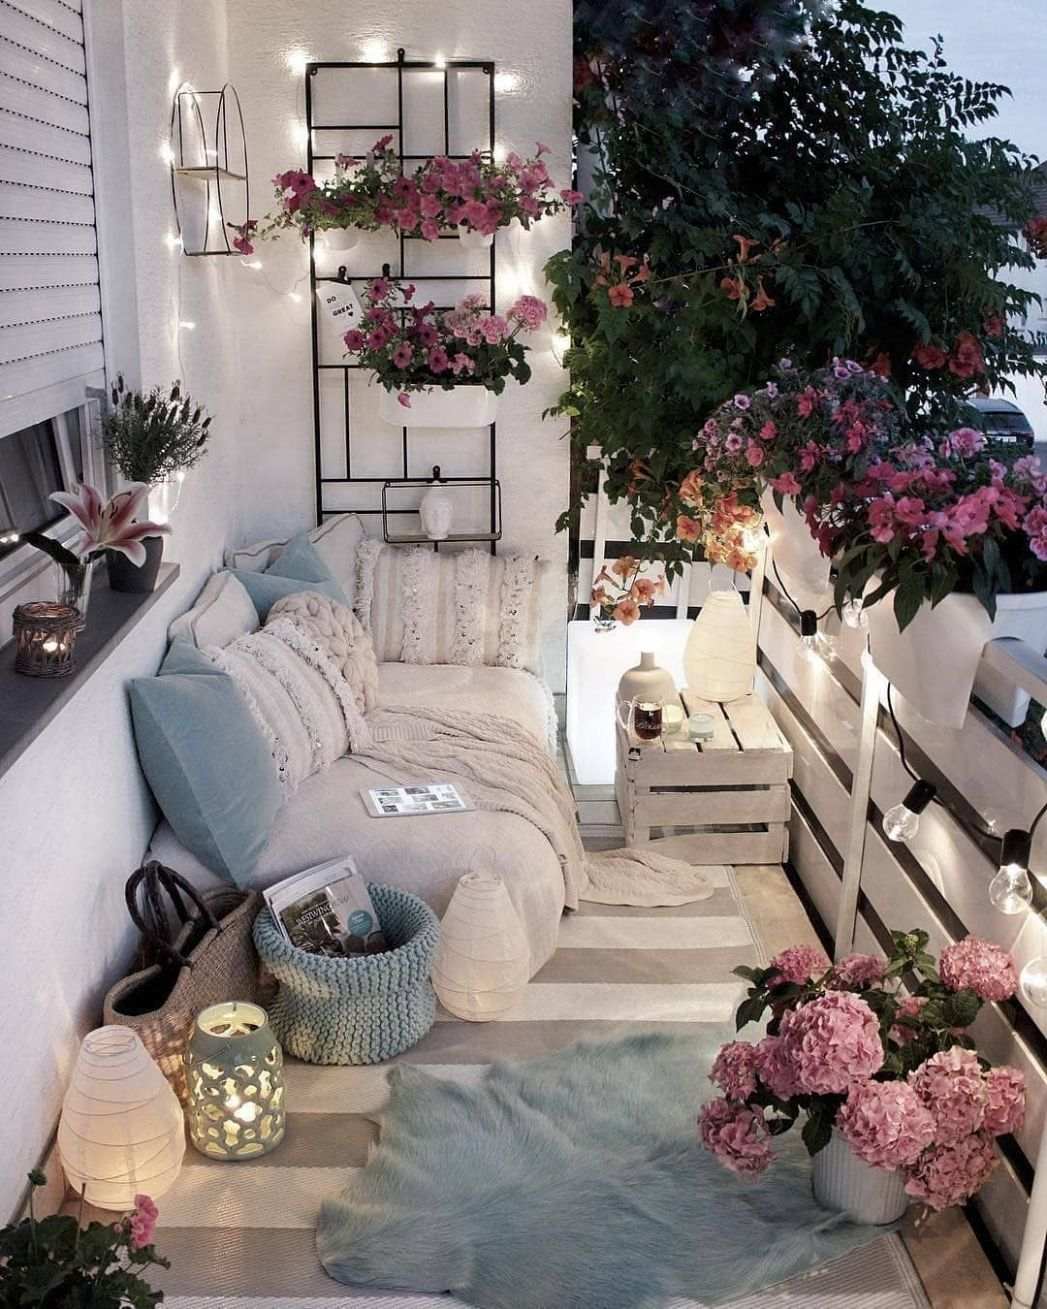 The Best Decorated Small Outdoor Balconies on Pinterest in 11 ..